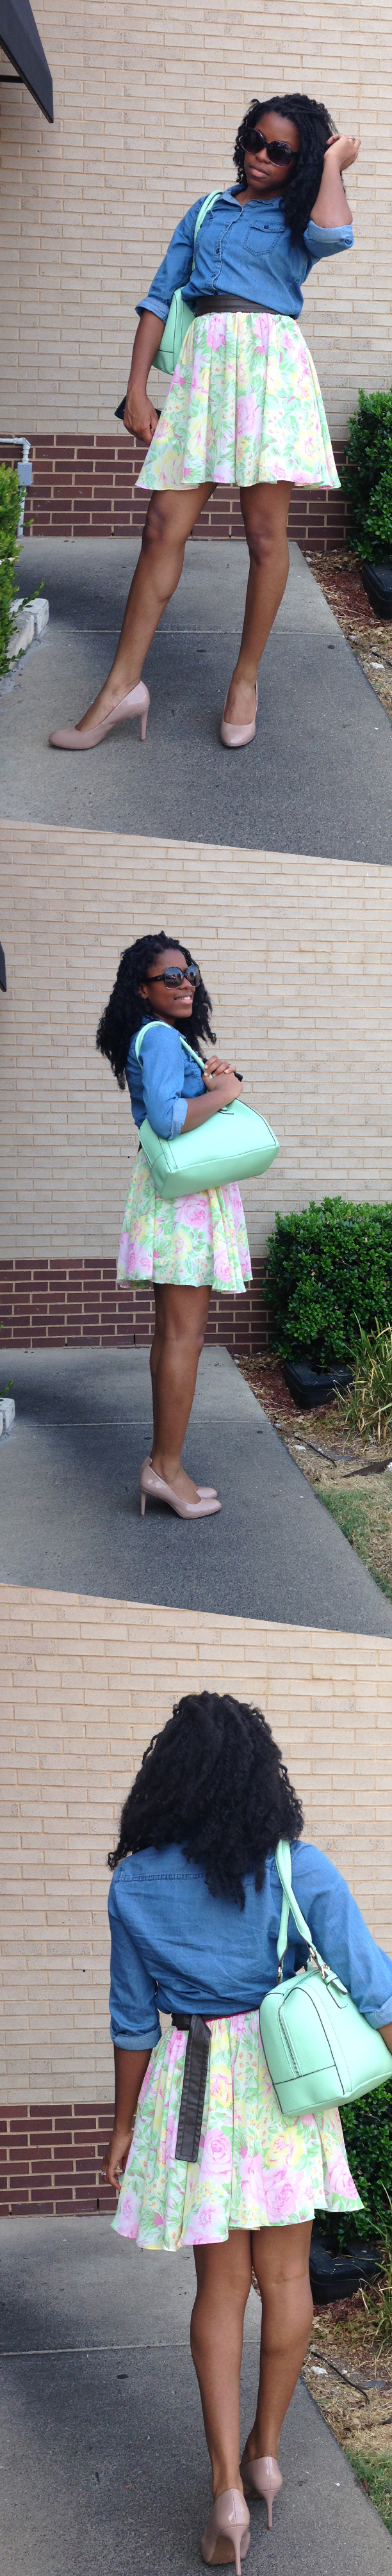 Elle is wearing a floral skirt that she refashioned form an old dress along with a thrifted Old Navy denim top, leather belt and a mint green purse from Charming Charlie.